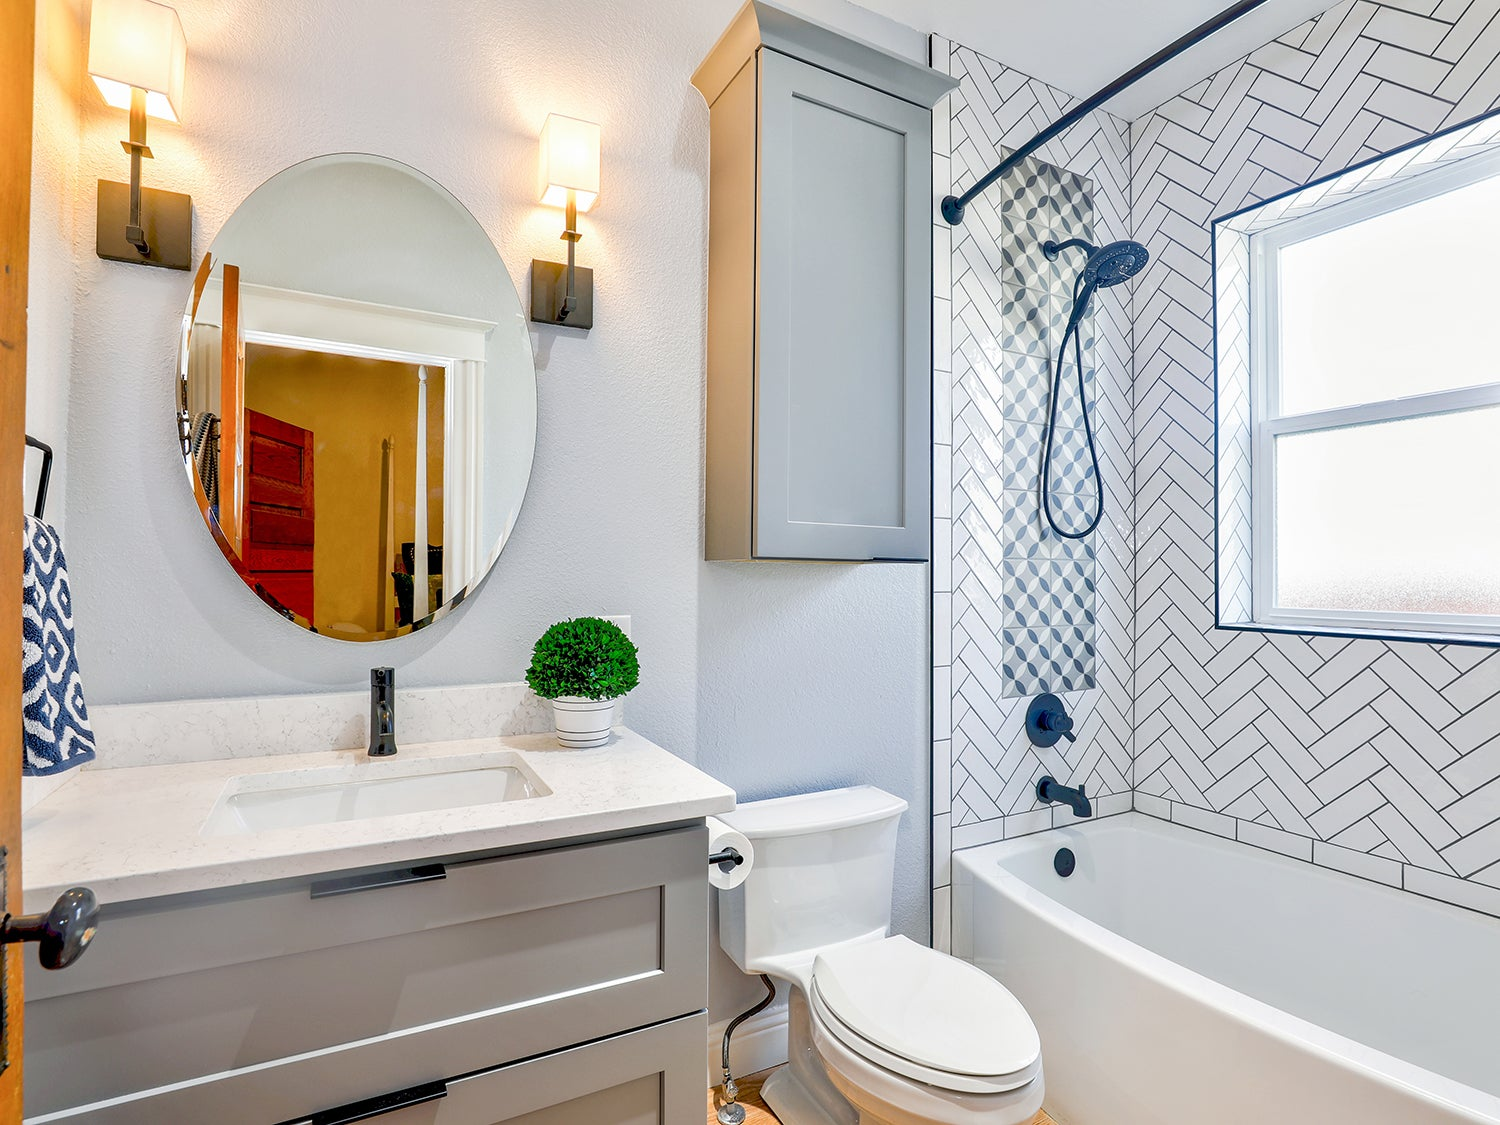 Overview of a home bathroom